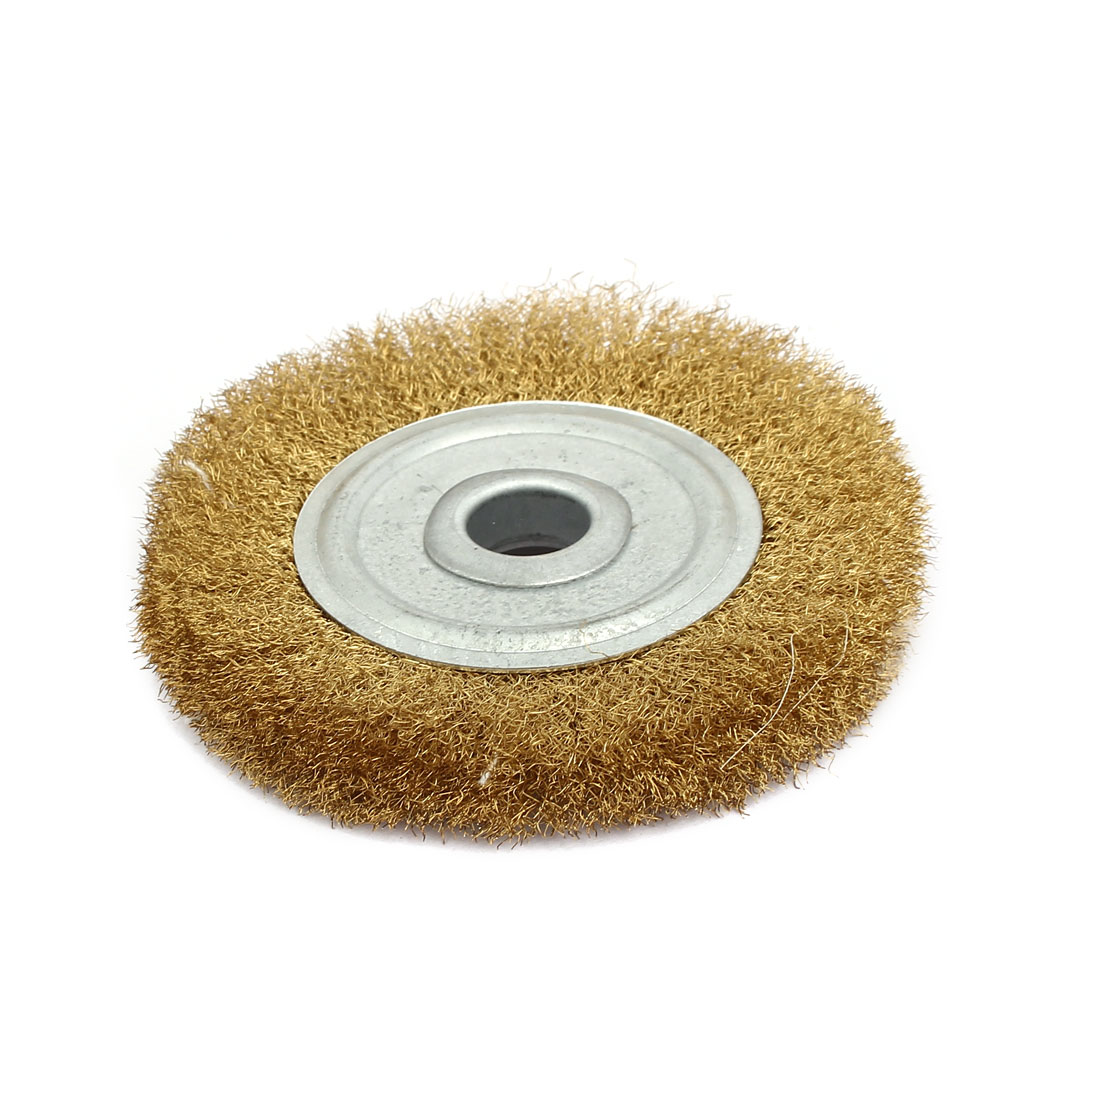 100mm Dia Brass Wire Polishing Brush Wheel Buffing Tool Brass Tone